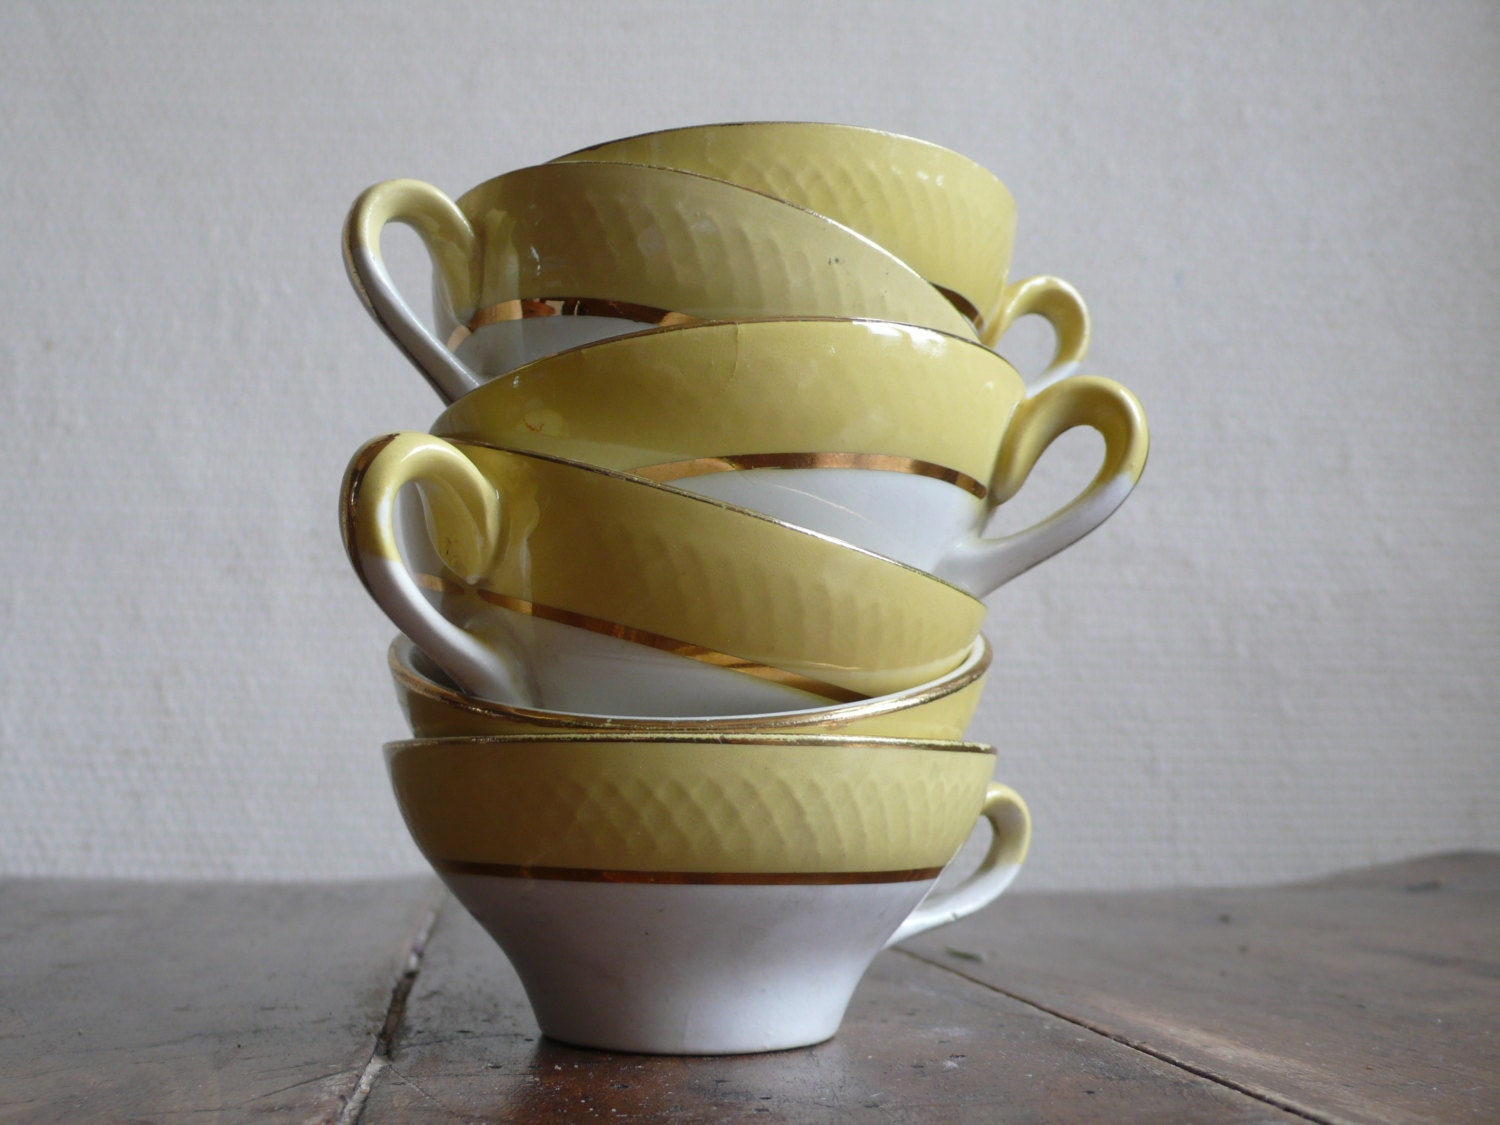 french vintage cups, espresso, yellow and white, gold,  tea, hot chocolate, antique,  French vintage housewares by ancienesthetique on etsy - ancienesthetique